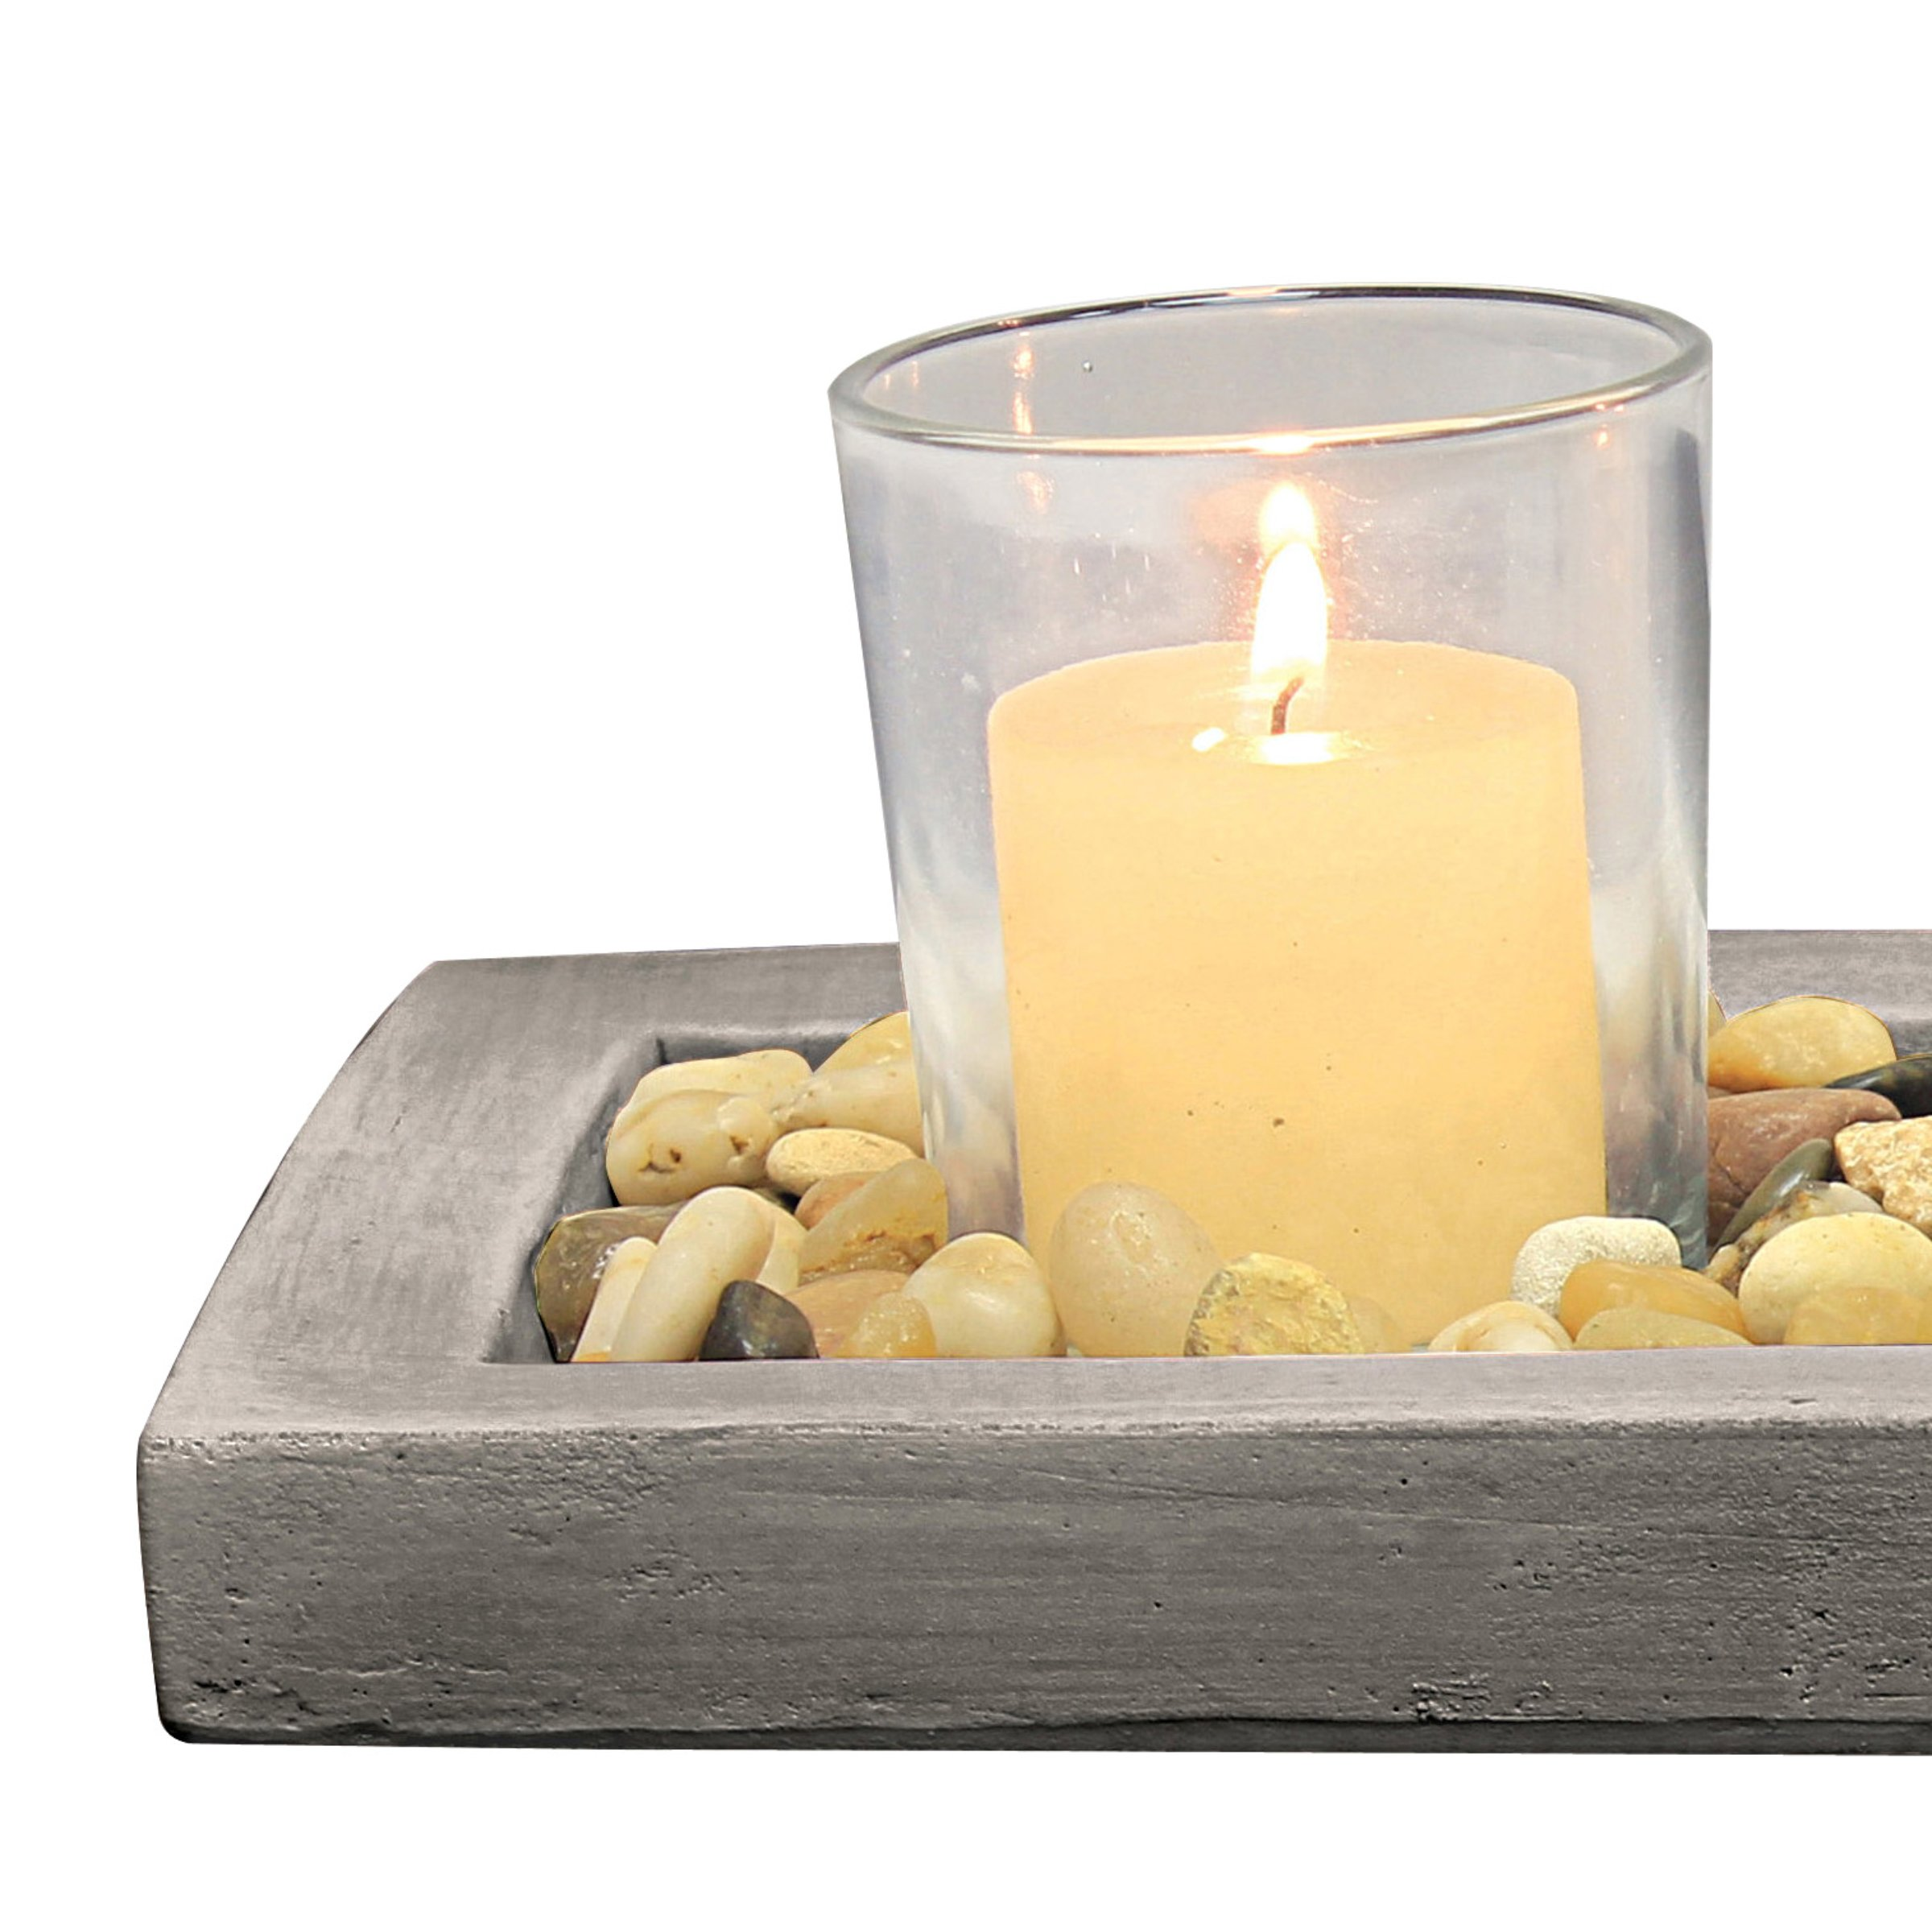 Briarwood Decorative Votive Tray with Rustic Cement Tray, Natural Pebbles, and 3 Clear Glass Votive Candle Holders, Unique Centerpiece for the Coffee Table, Dining Table, or Any Table Top by Briarwood (Image #2)